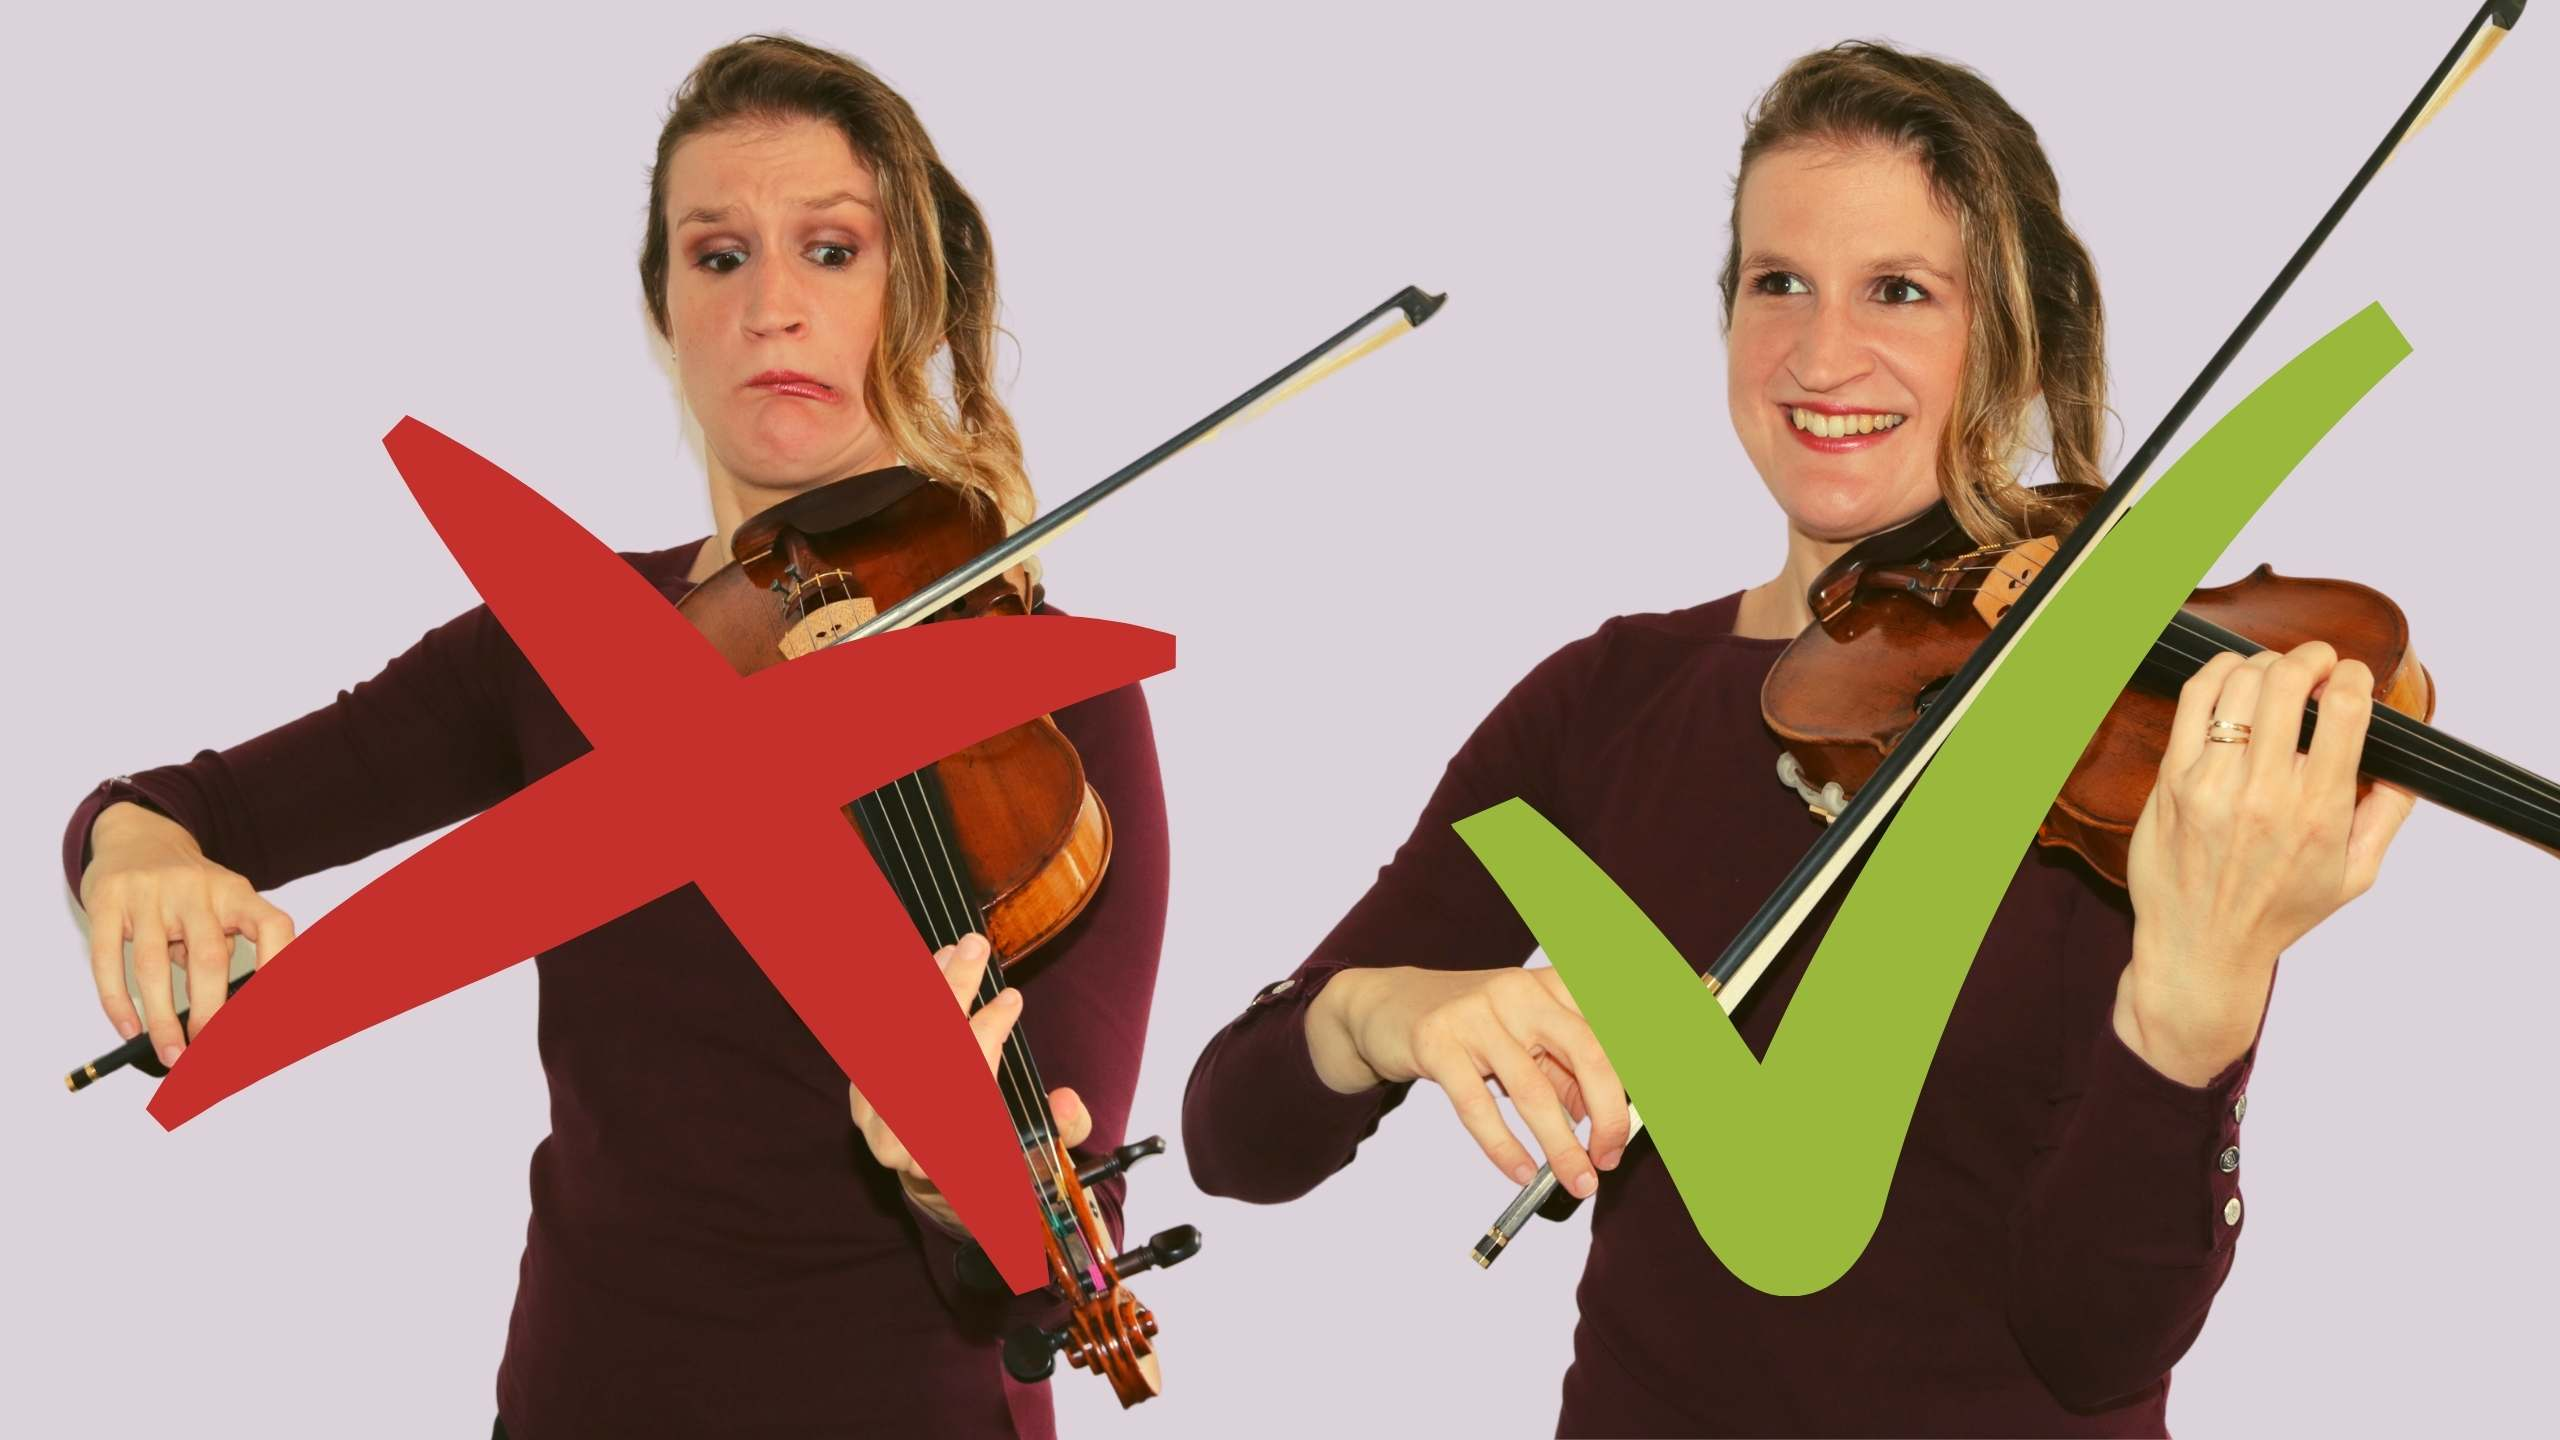 20 Tips to NOT Hit Other Strings and Sound Scratchy on the Violin